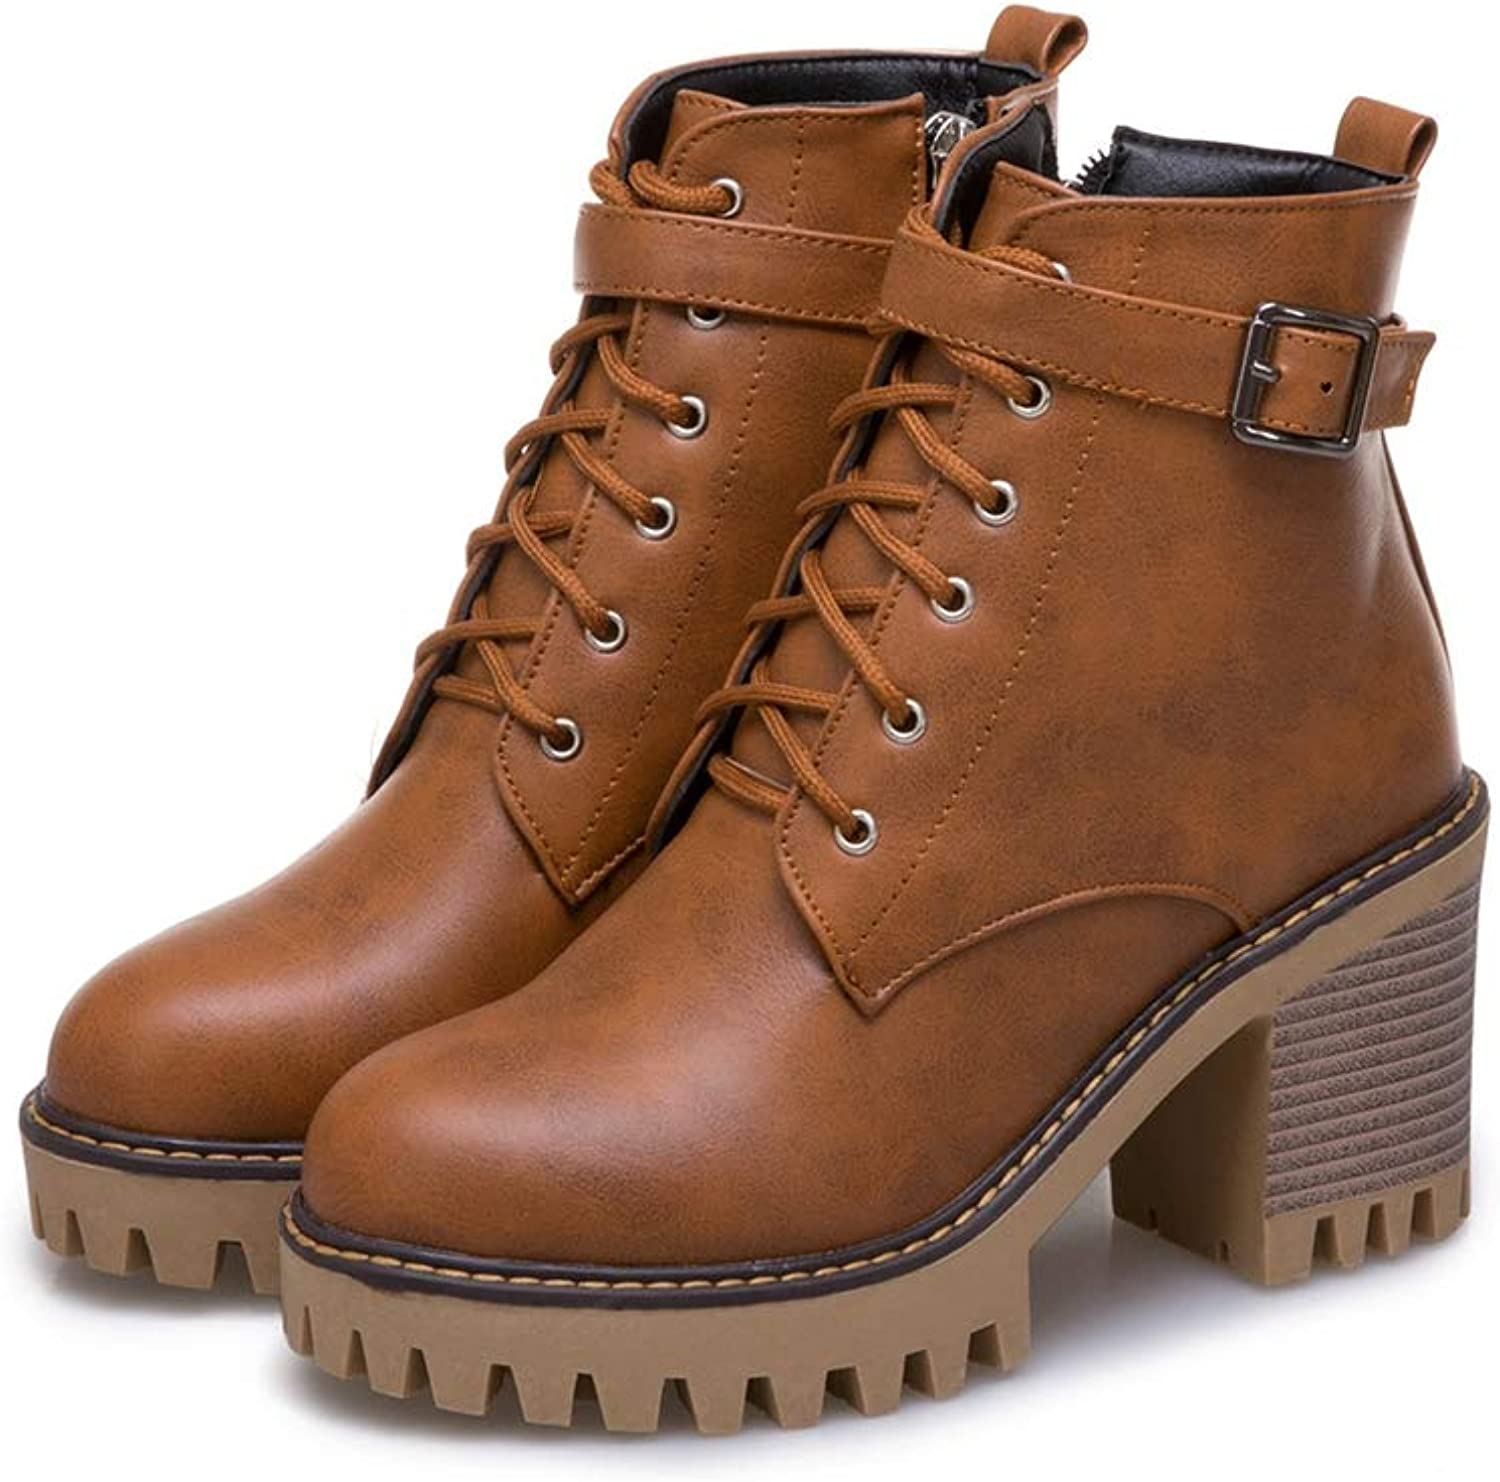 Sam Carle Women Boots, Belt Buckle Side Zipper Thick Heel Round Toe Ankle Martin Boots